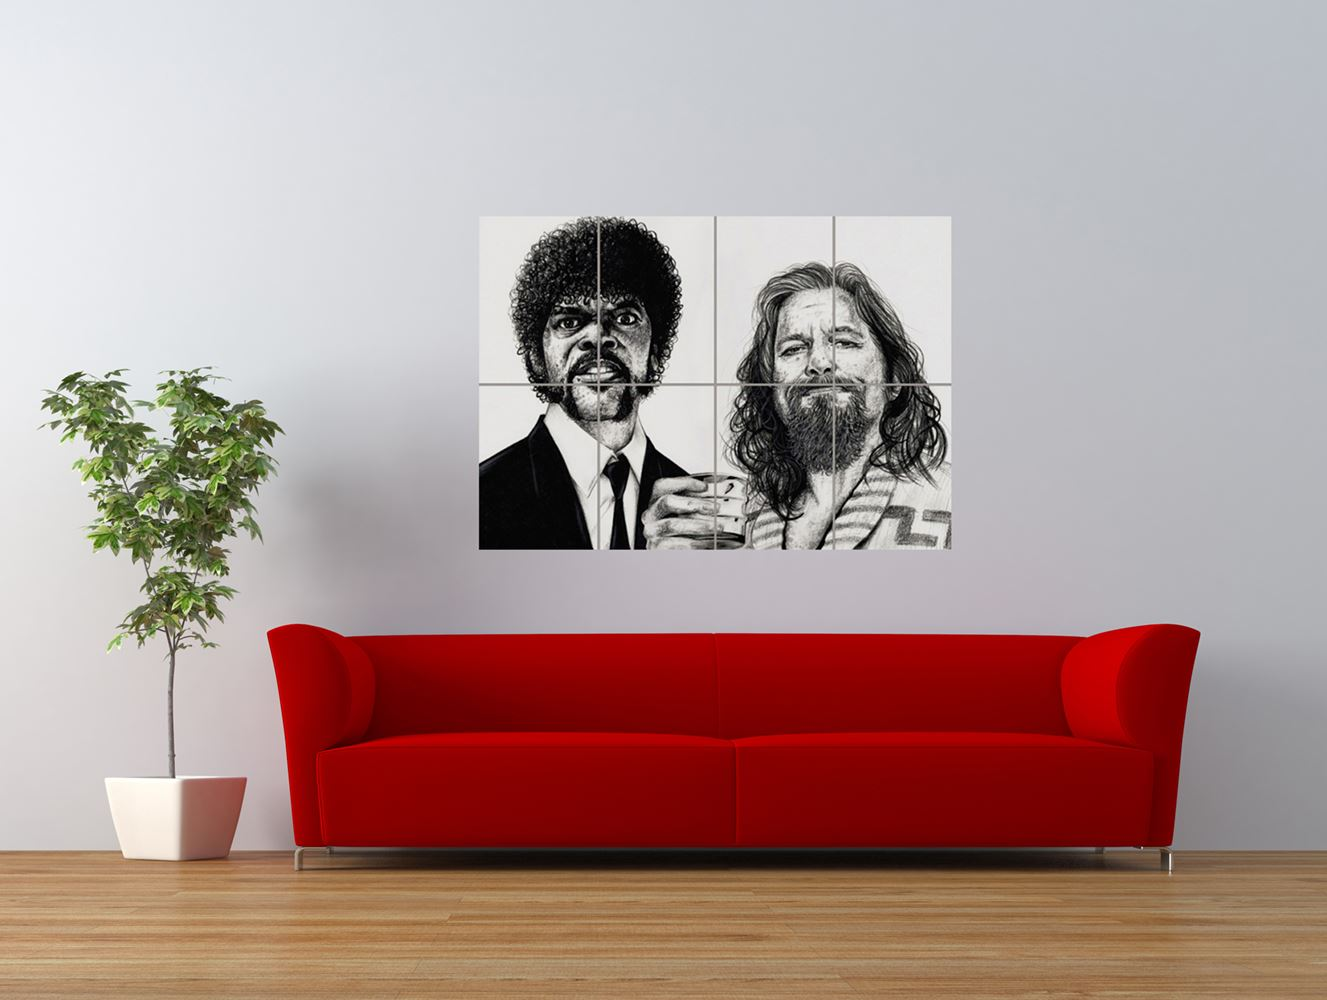 wm pulp fiction big lebowski tattoo icon giant art print panel poster nor0577 ebay. Black Bedroom Furniture Sets. Home Design Ideas